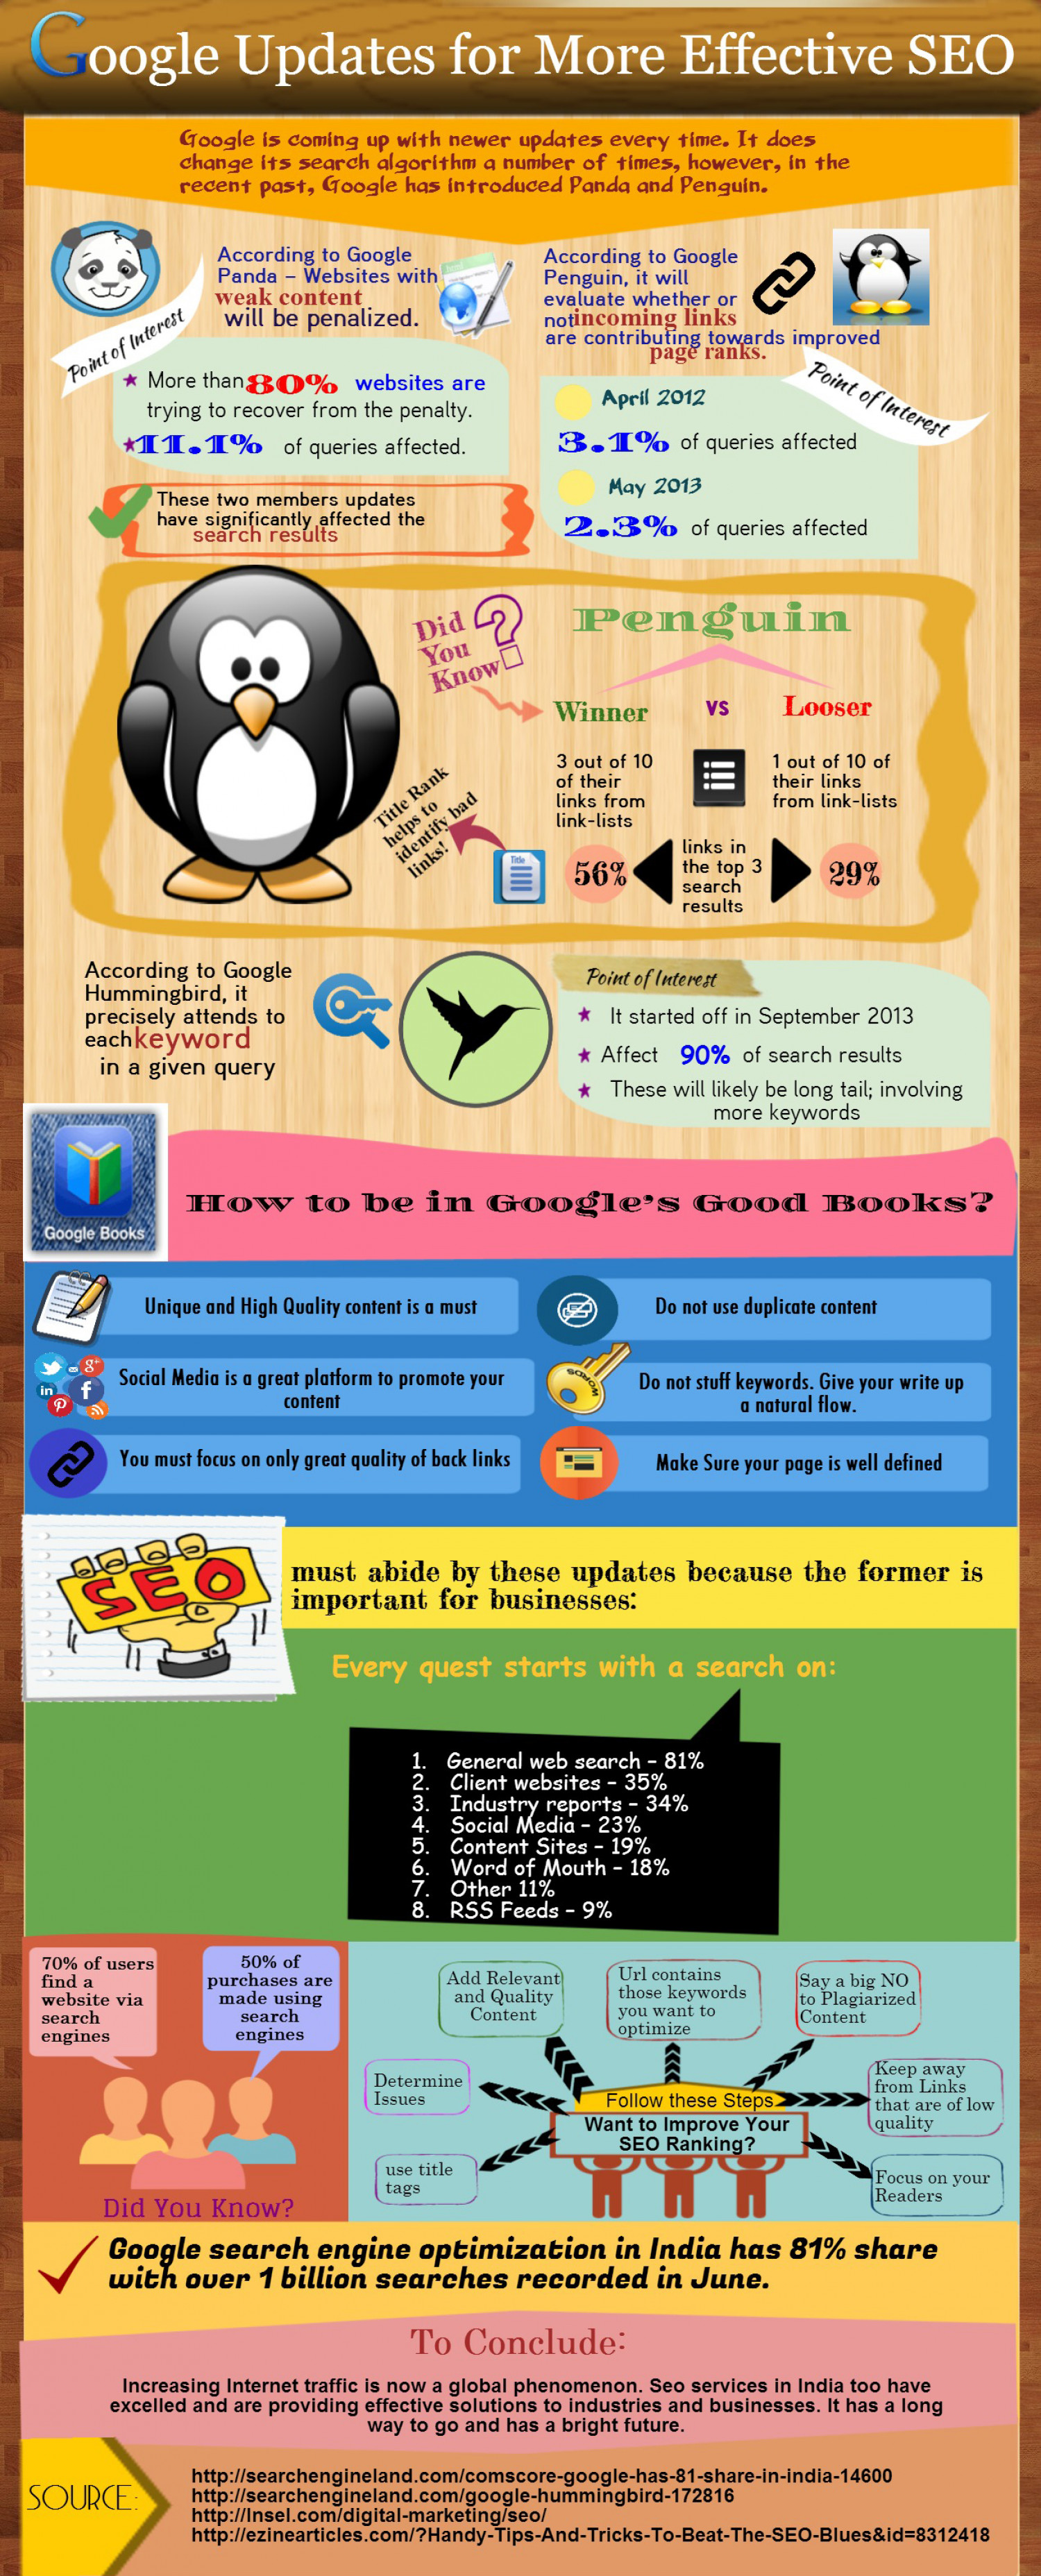 Google Updates for More Effective SEO Infographic